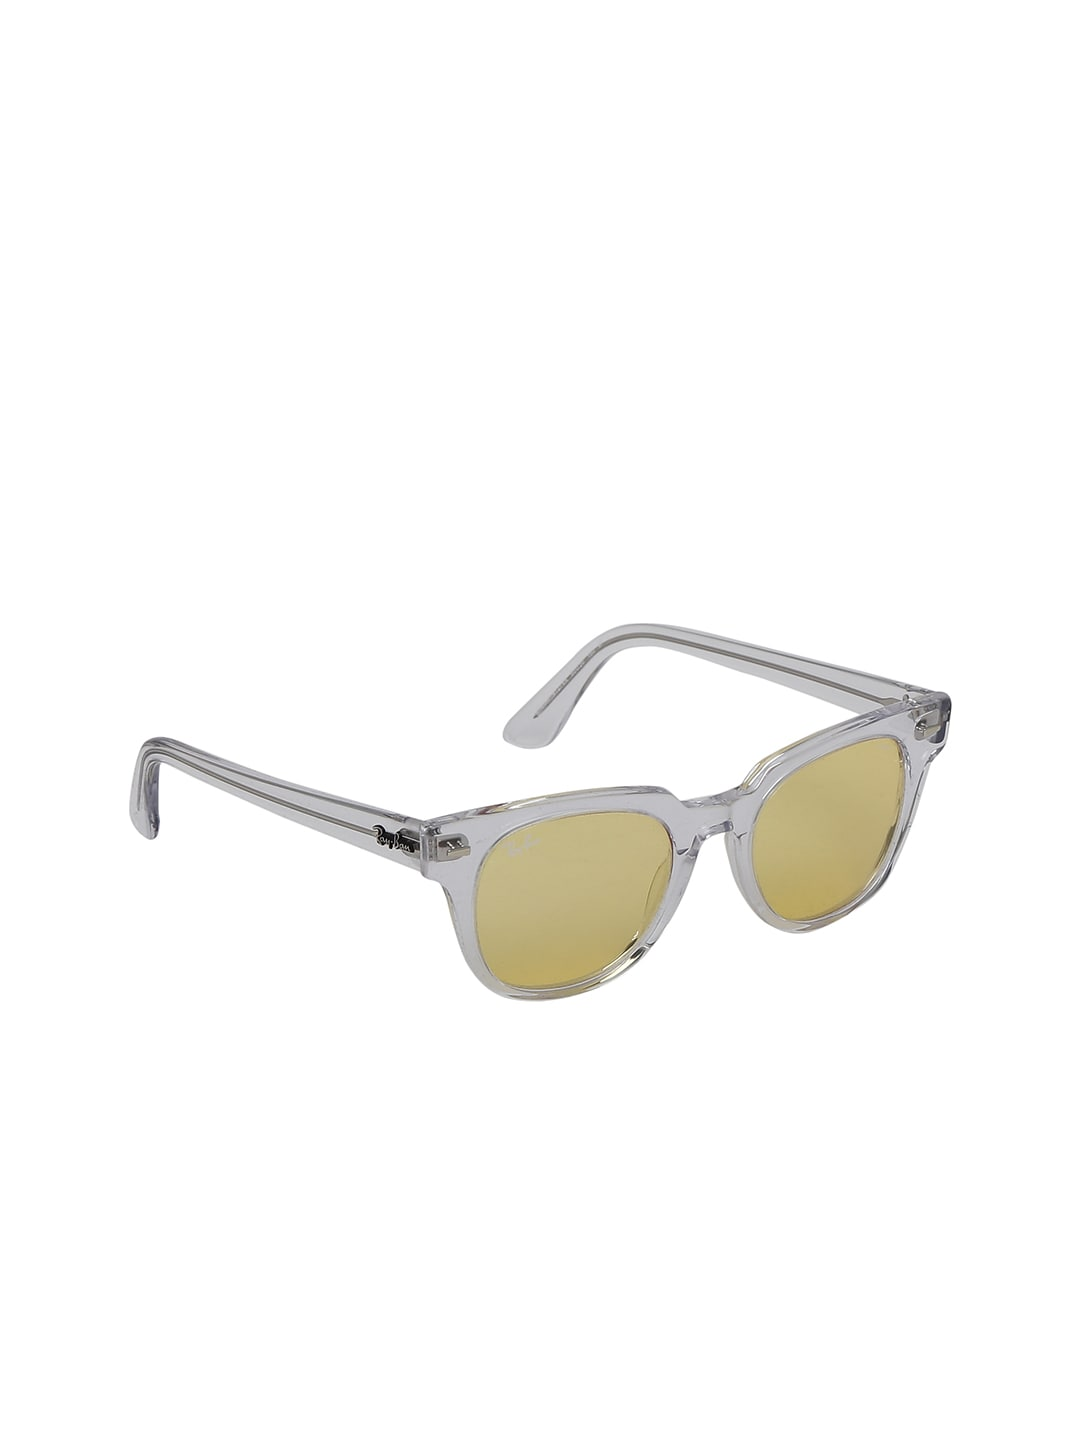 85c7a6341e5 Ray-Ban® - Buy Ray-Ban Sunglasses   Frames Online in India